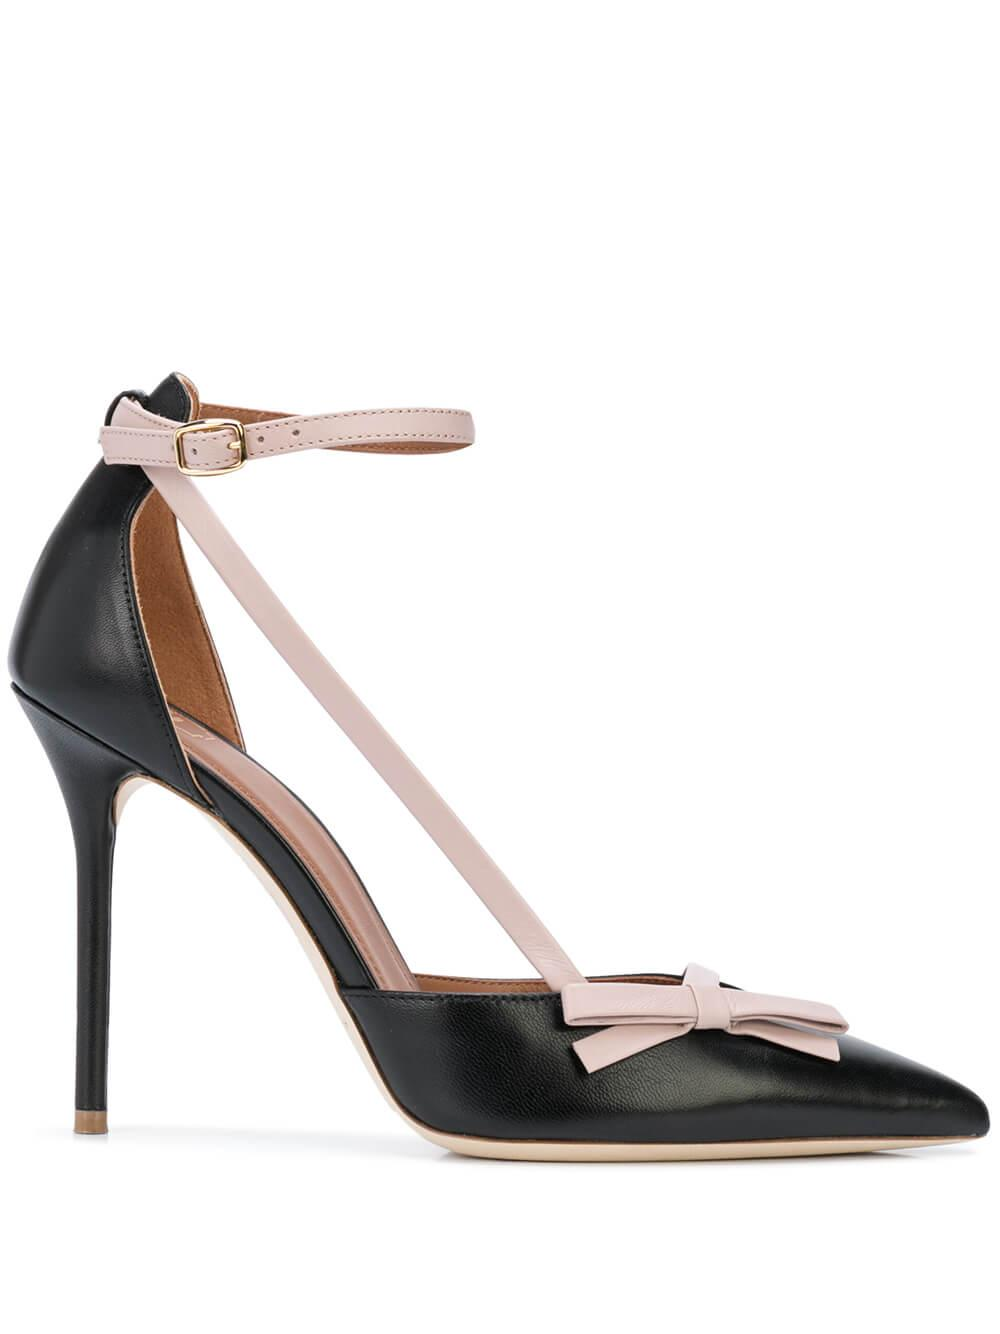 Nappa 100M Ankle Strap Pump With Bow